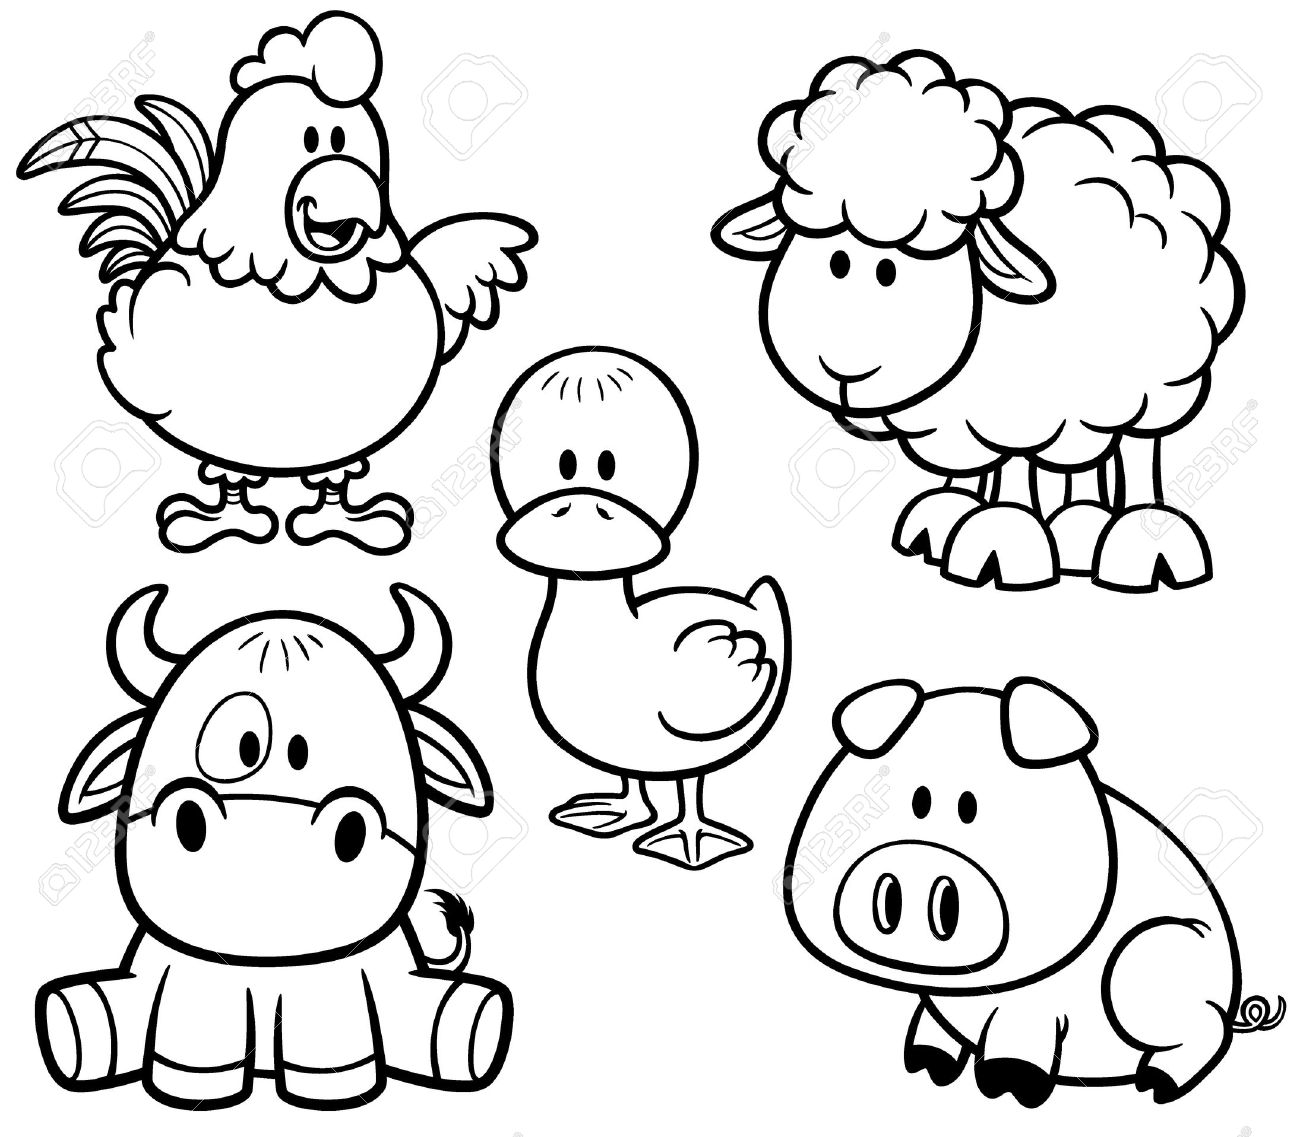 baby animals to color free easy to print baby animal coloring pages tulamama color animals baby to